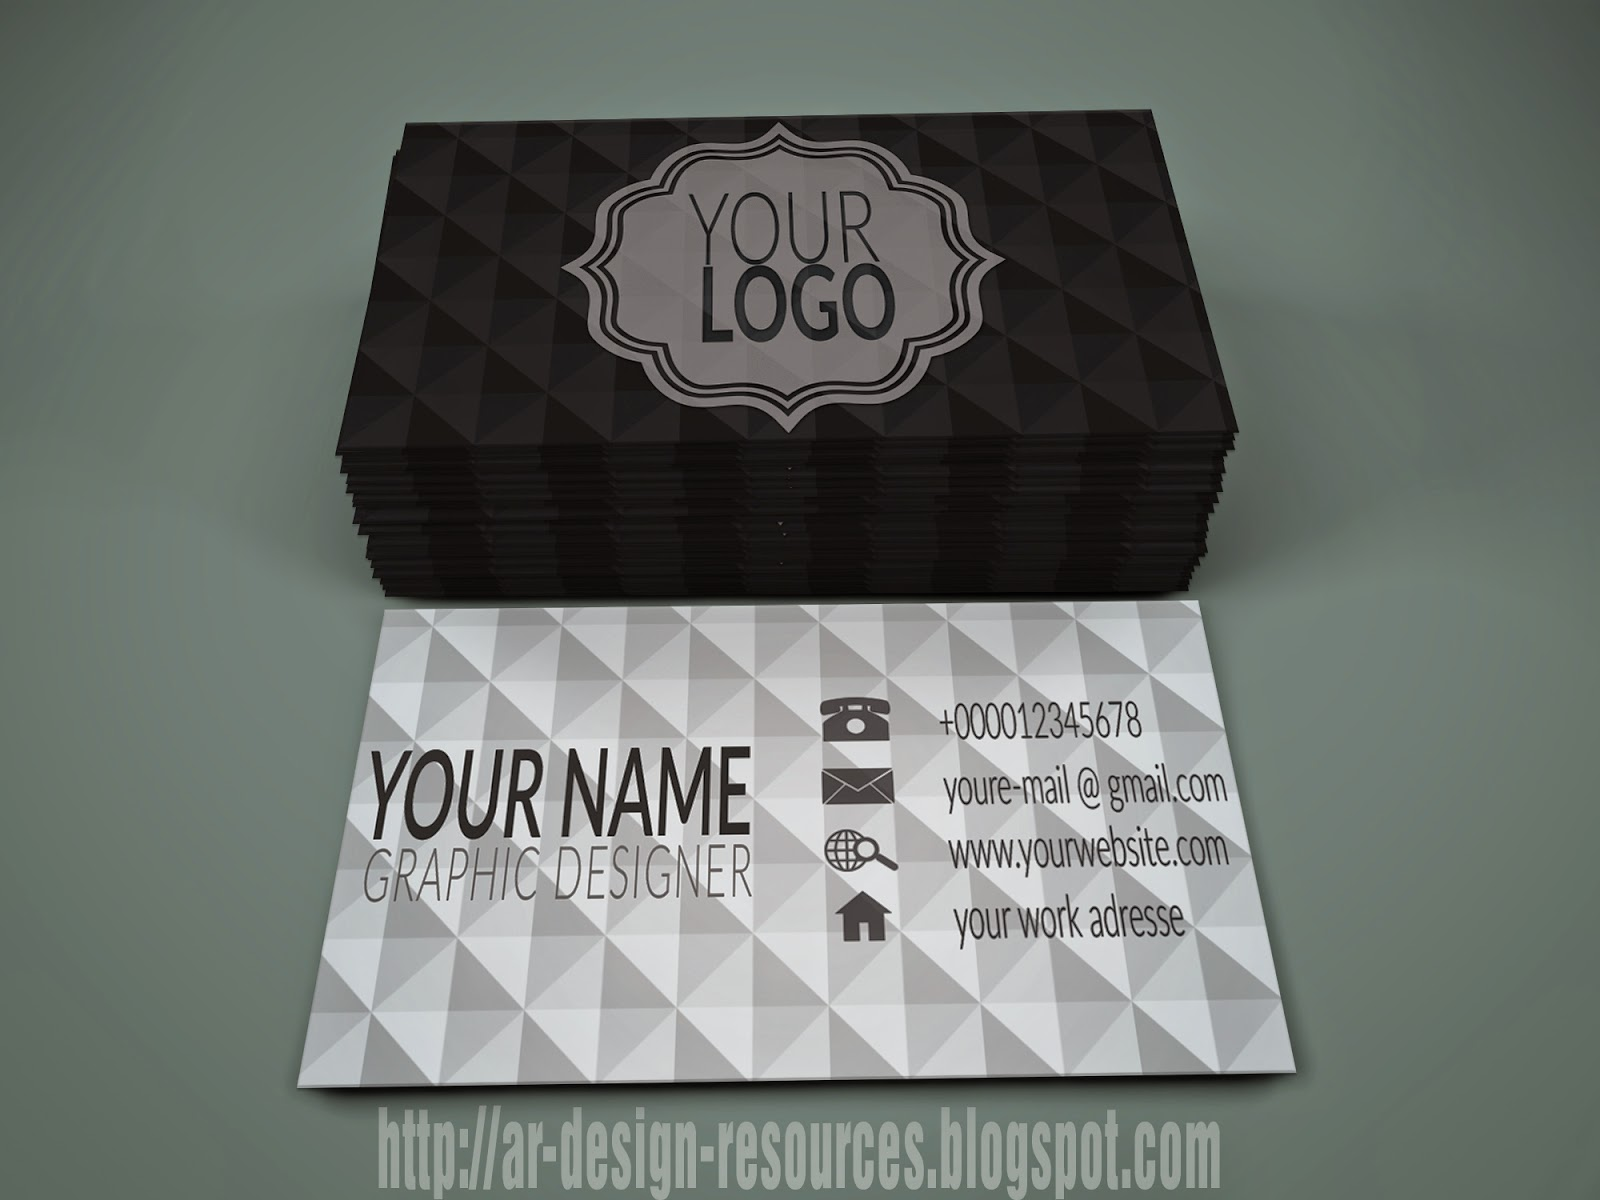 Creative triangle Personal business card | Adobe Photoshop Tutorial